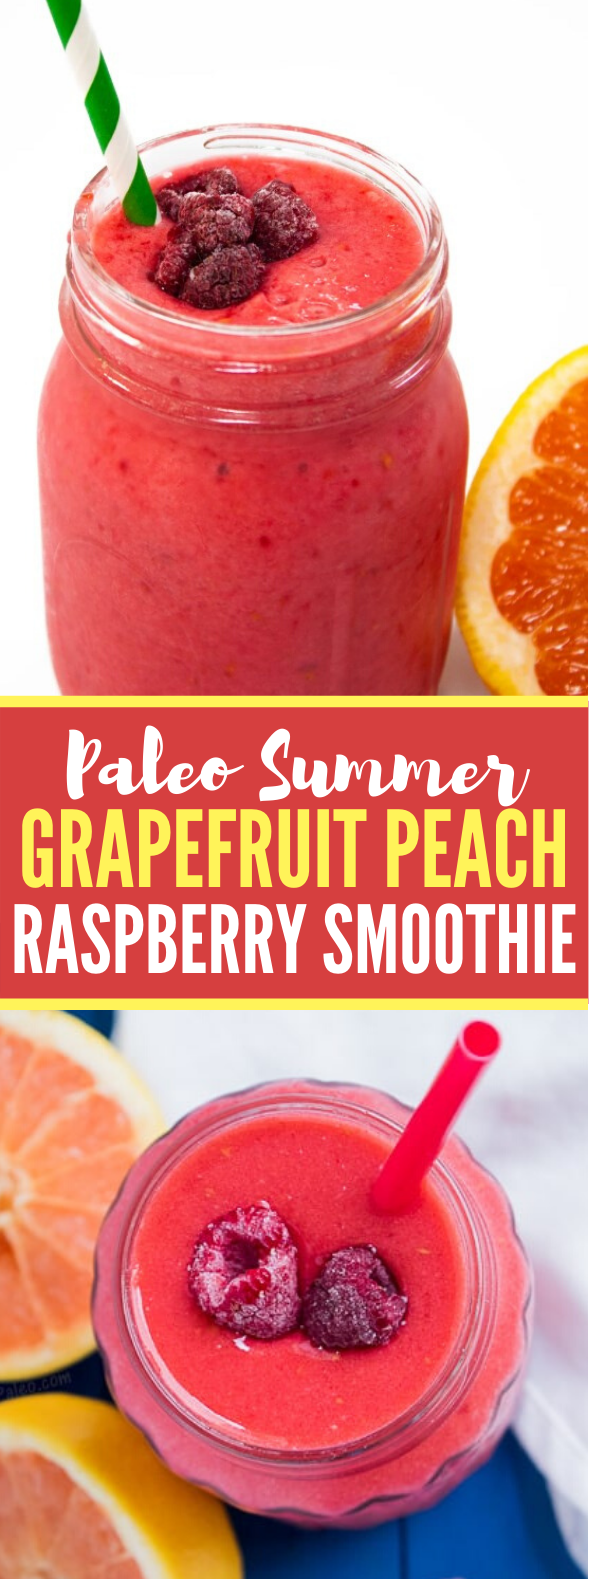 Paleo Summer Grapefruit Peach Raspberry Smoothie #drinks #coolingdrink